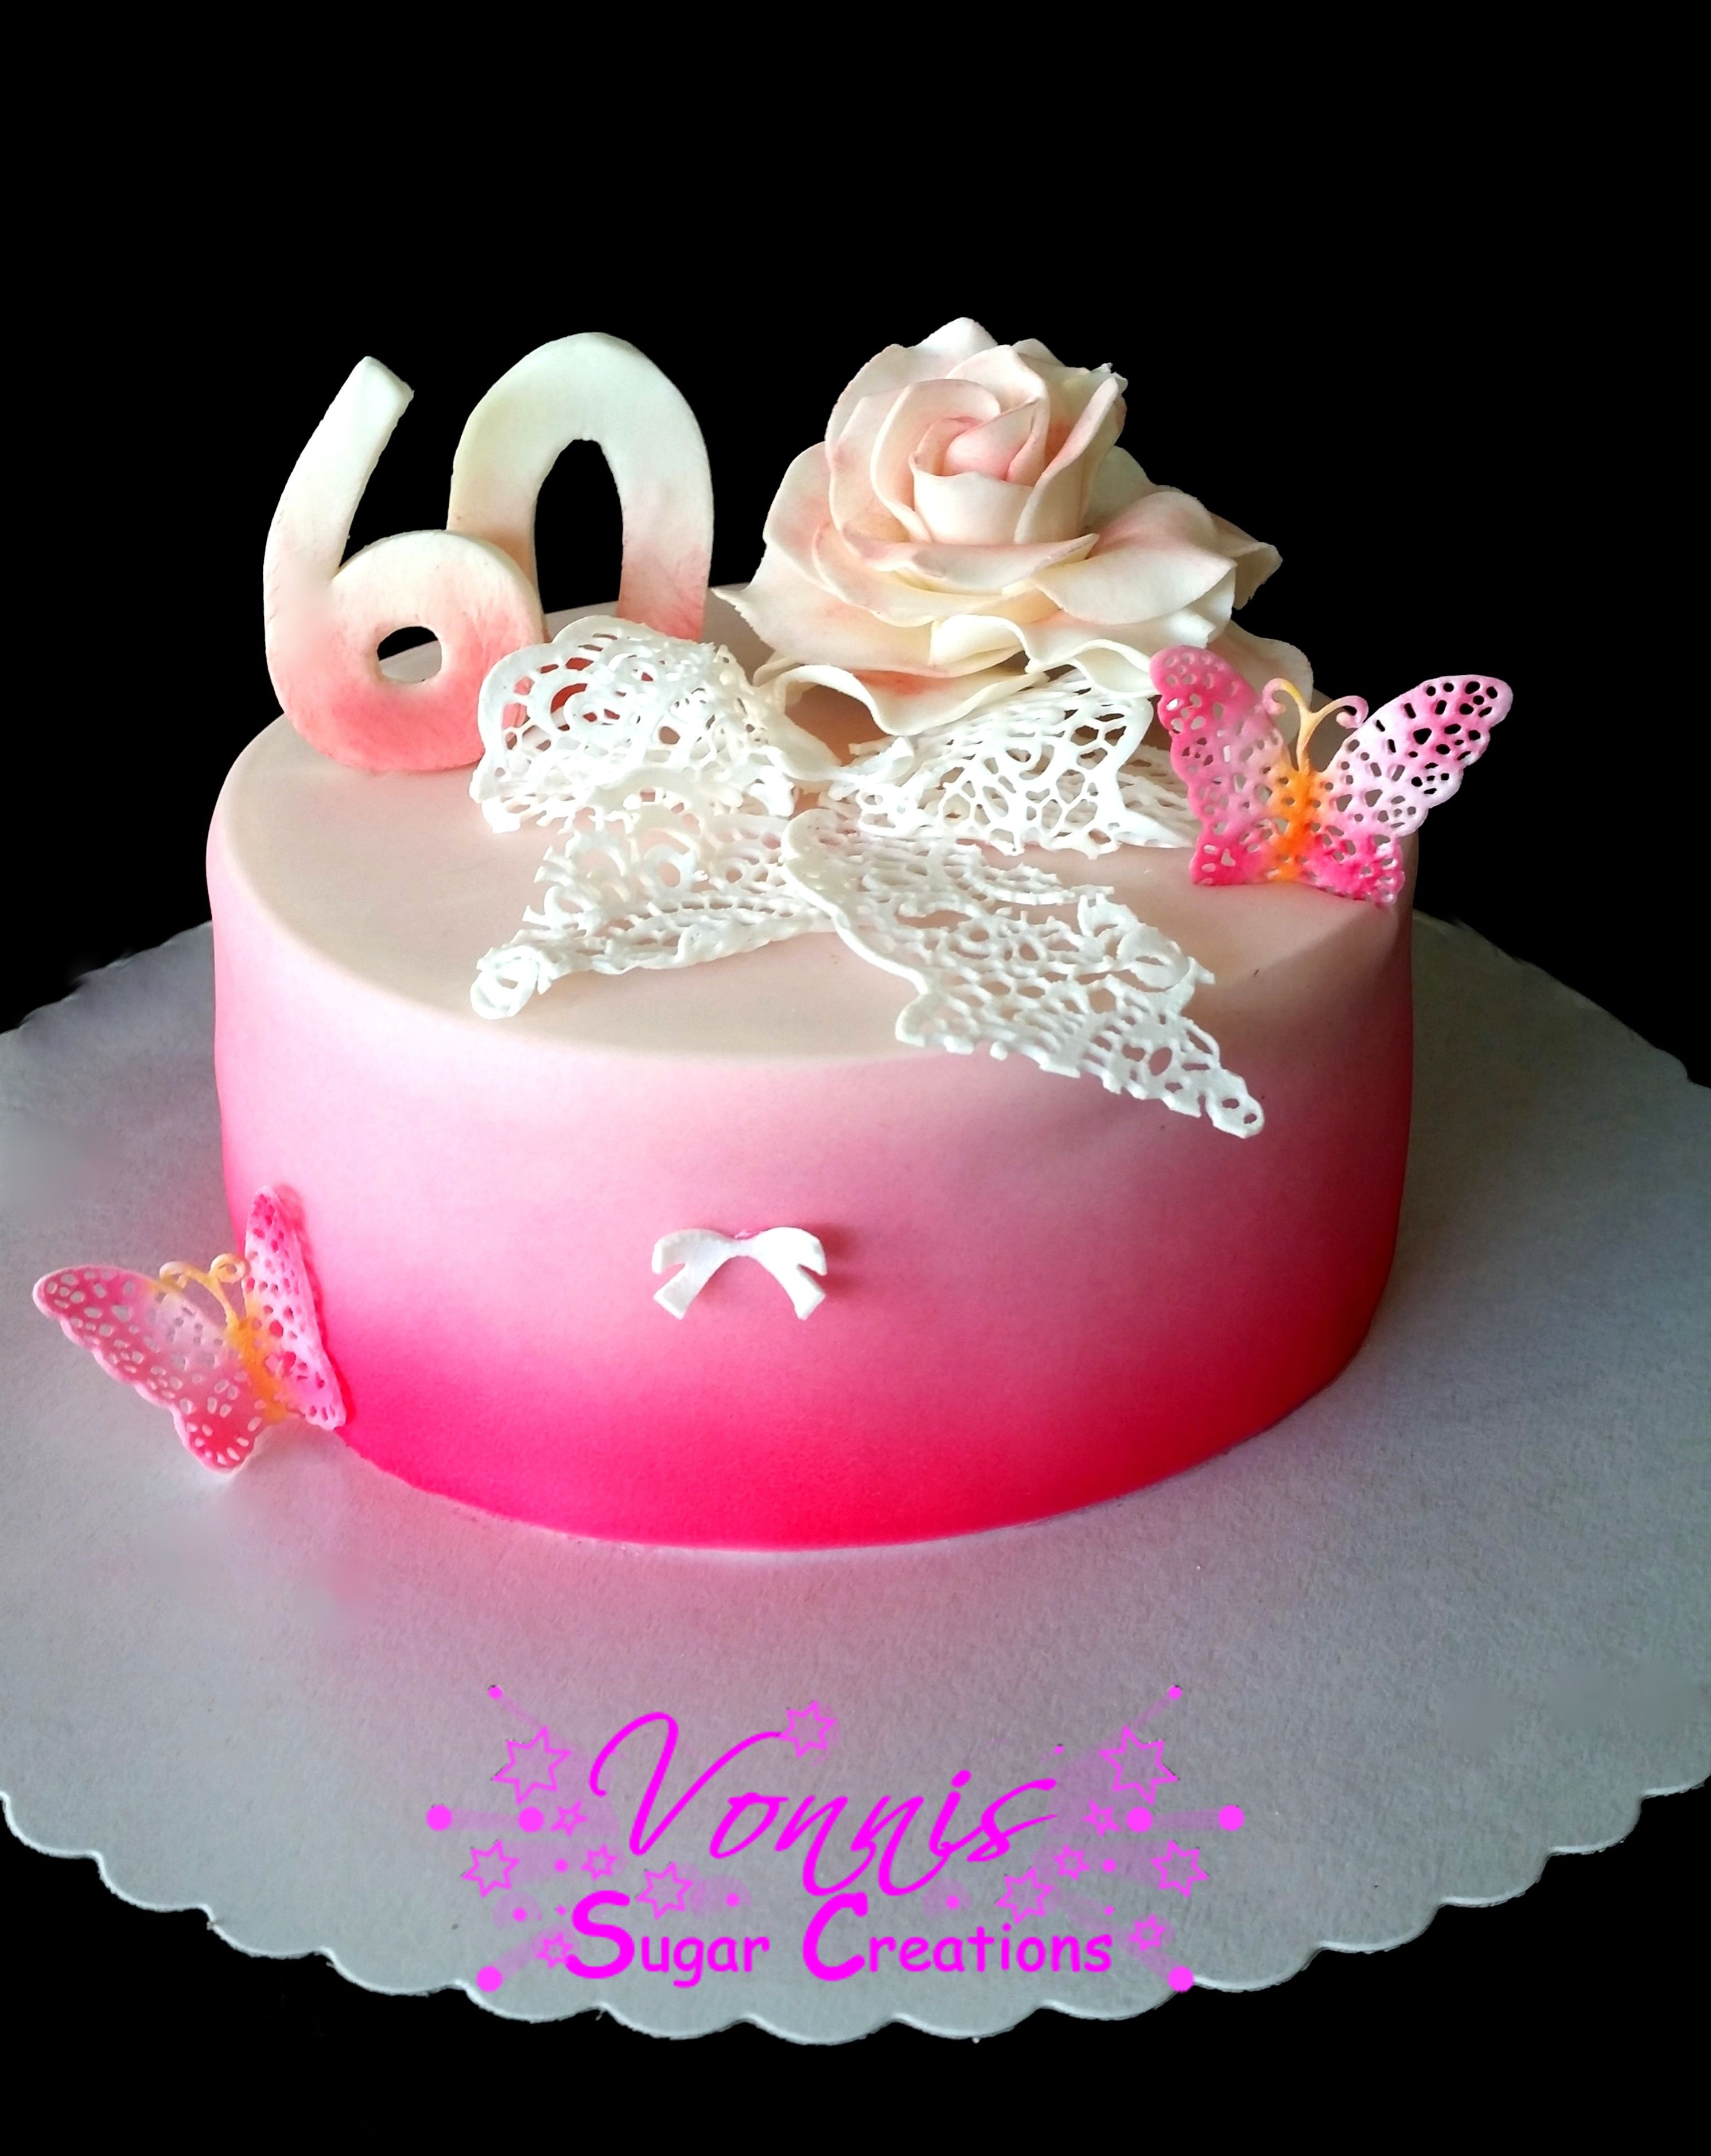 60 bithday cake cake lace airbrush fondant butterfly. Black Bedroom Furniture Sets. Home Design Ideas